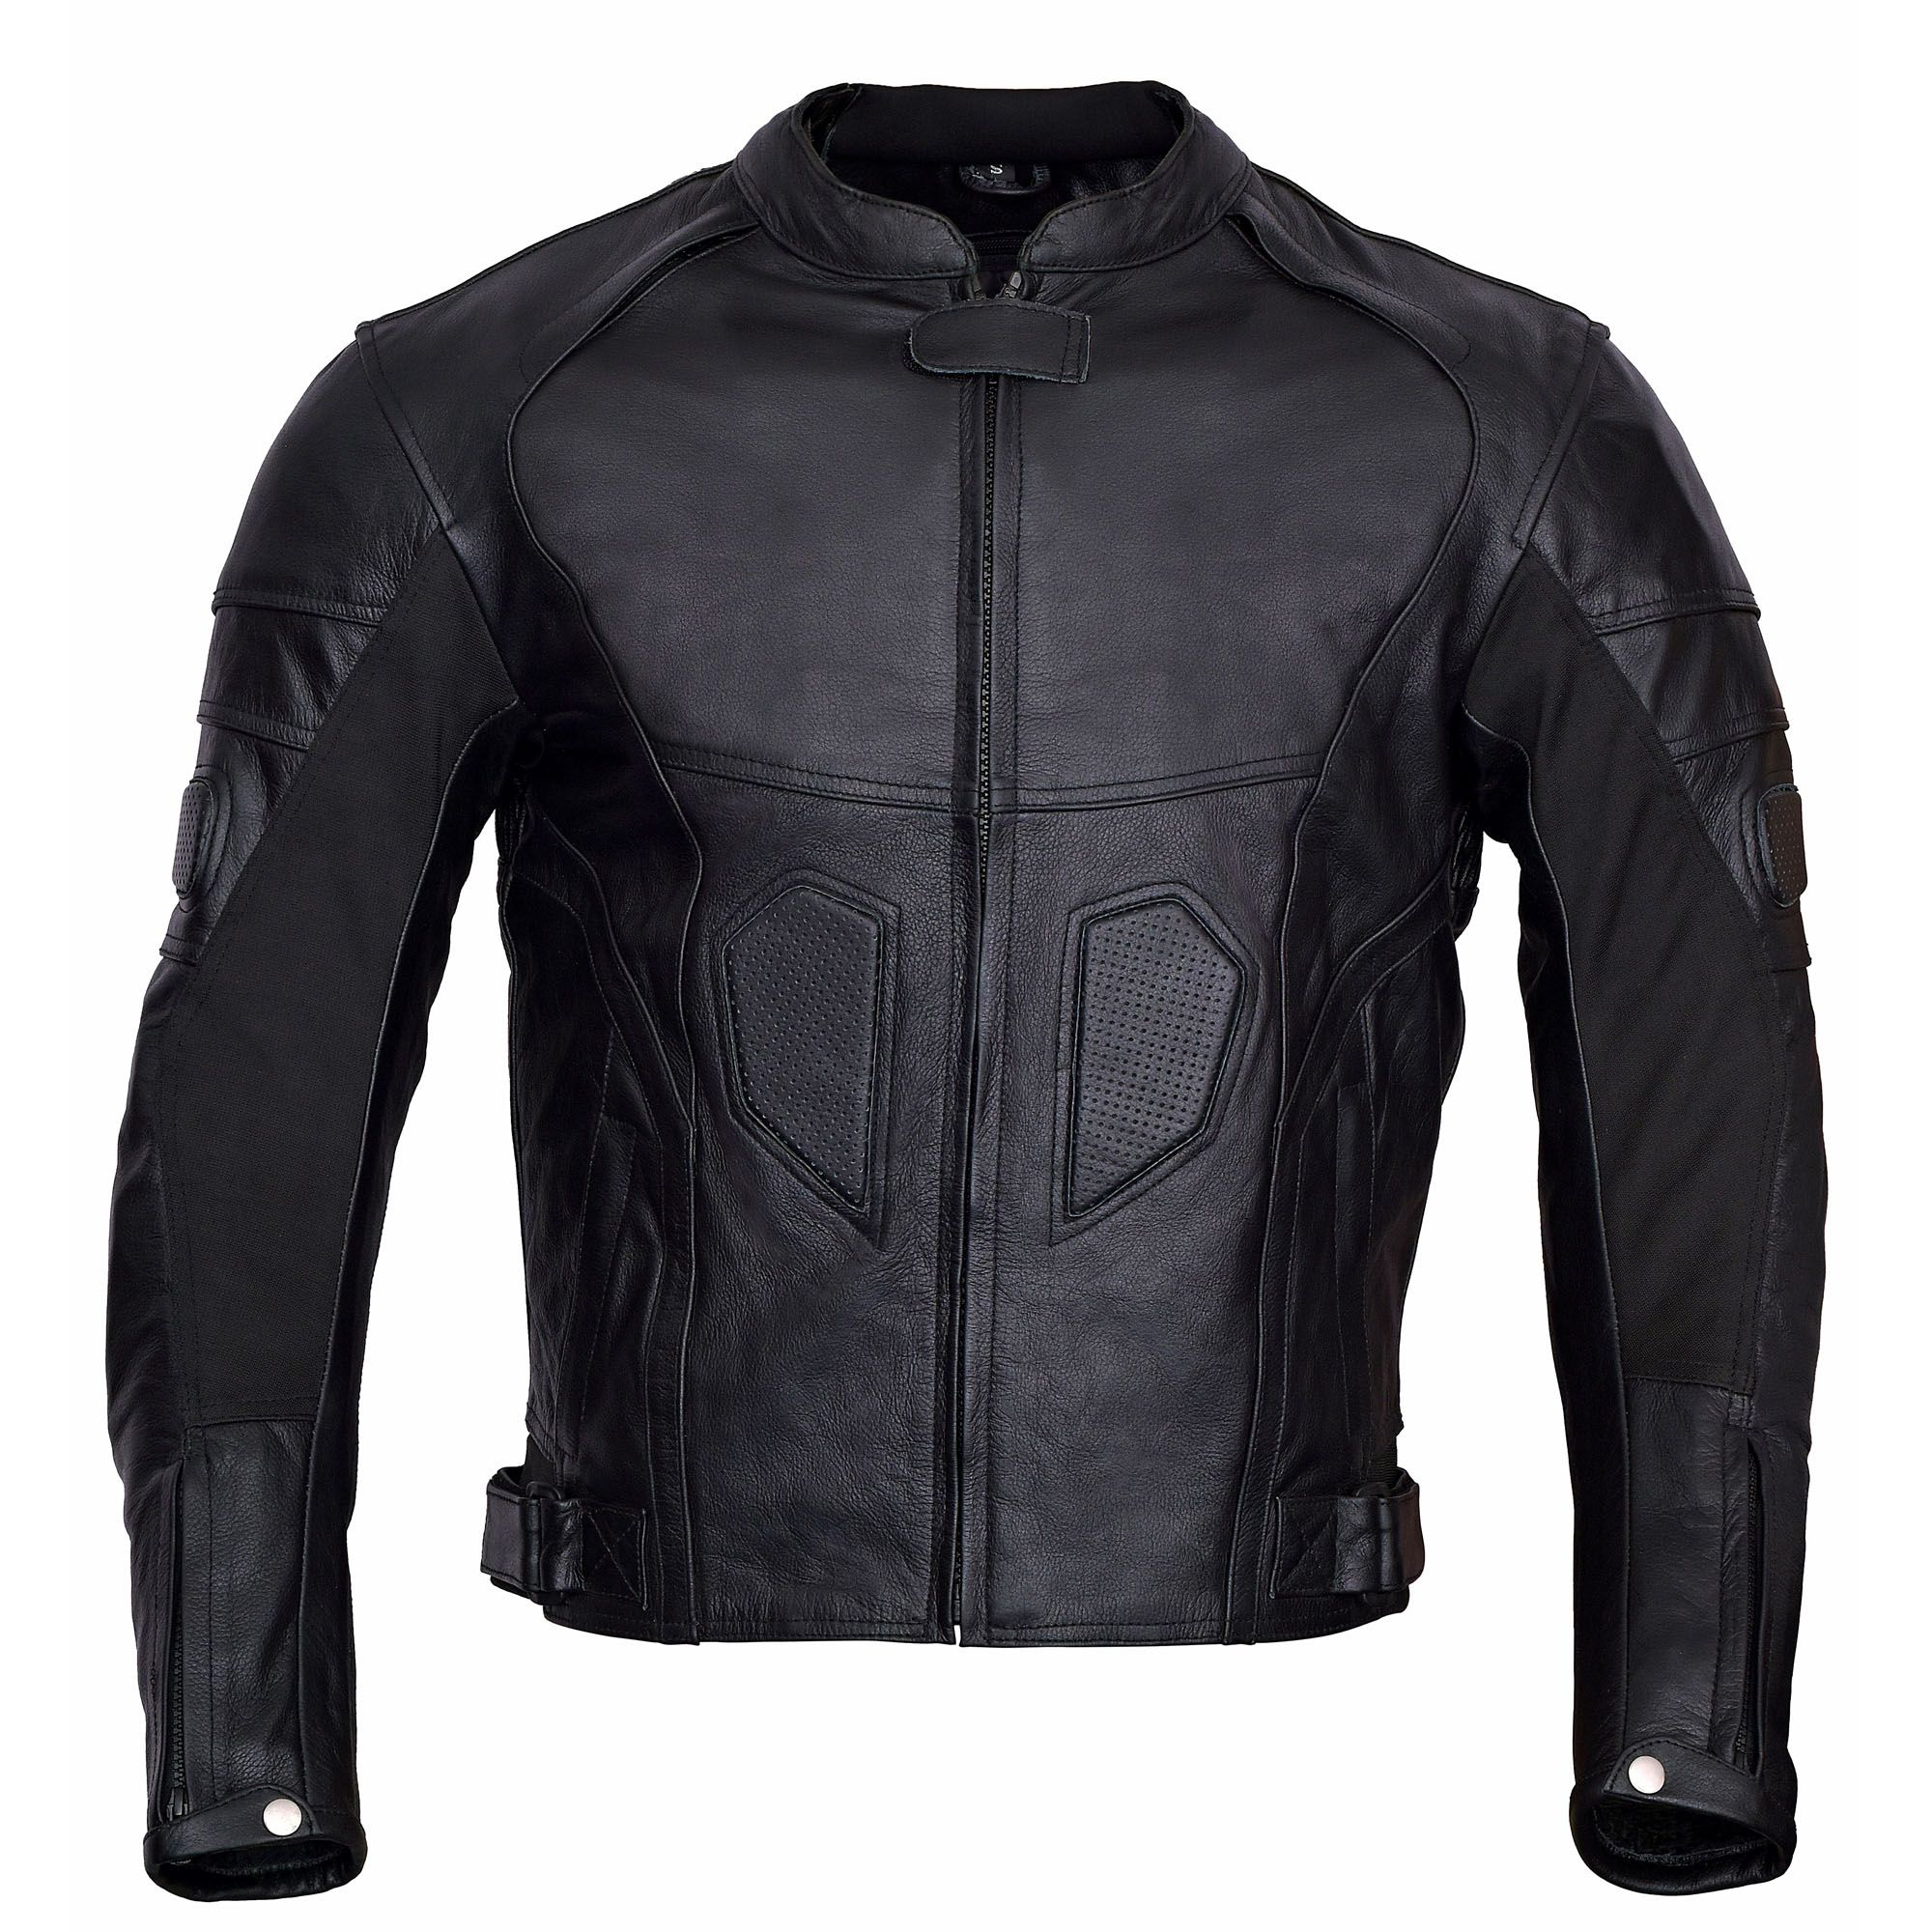 Men's BlackHeart Motorcycle Leather Race Jacket (With